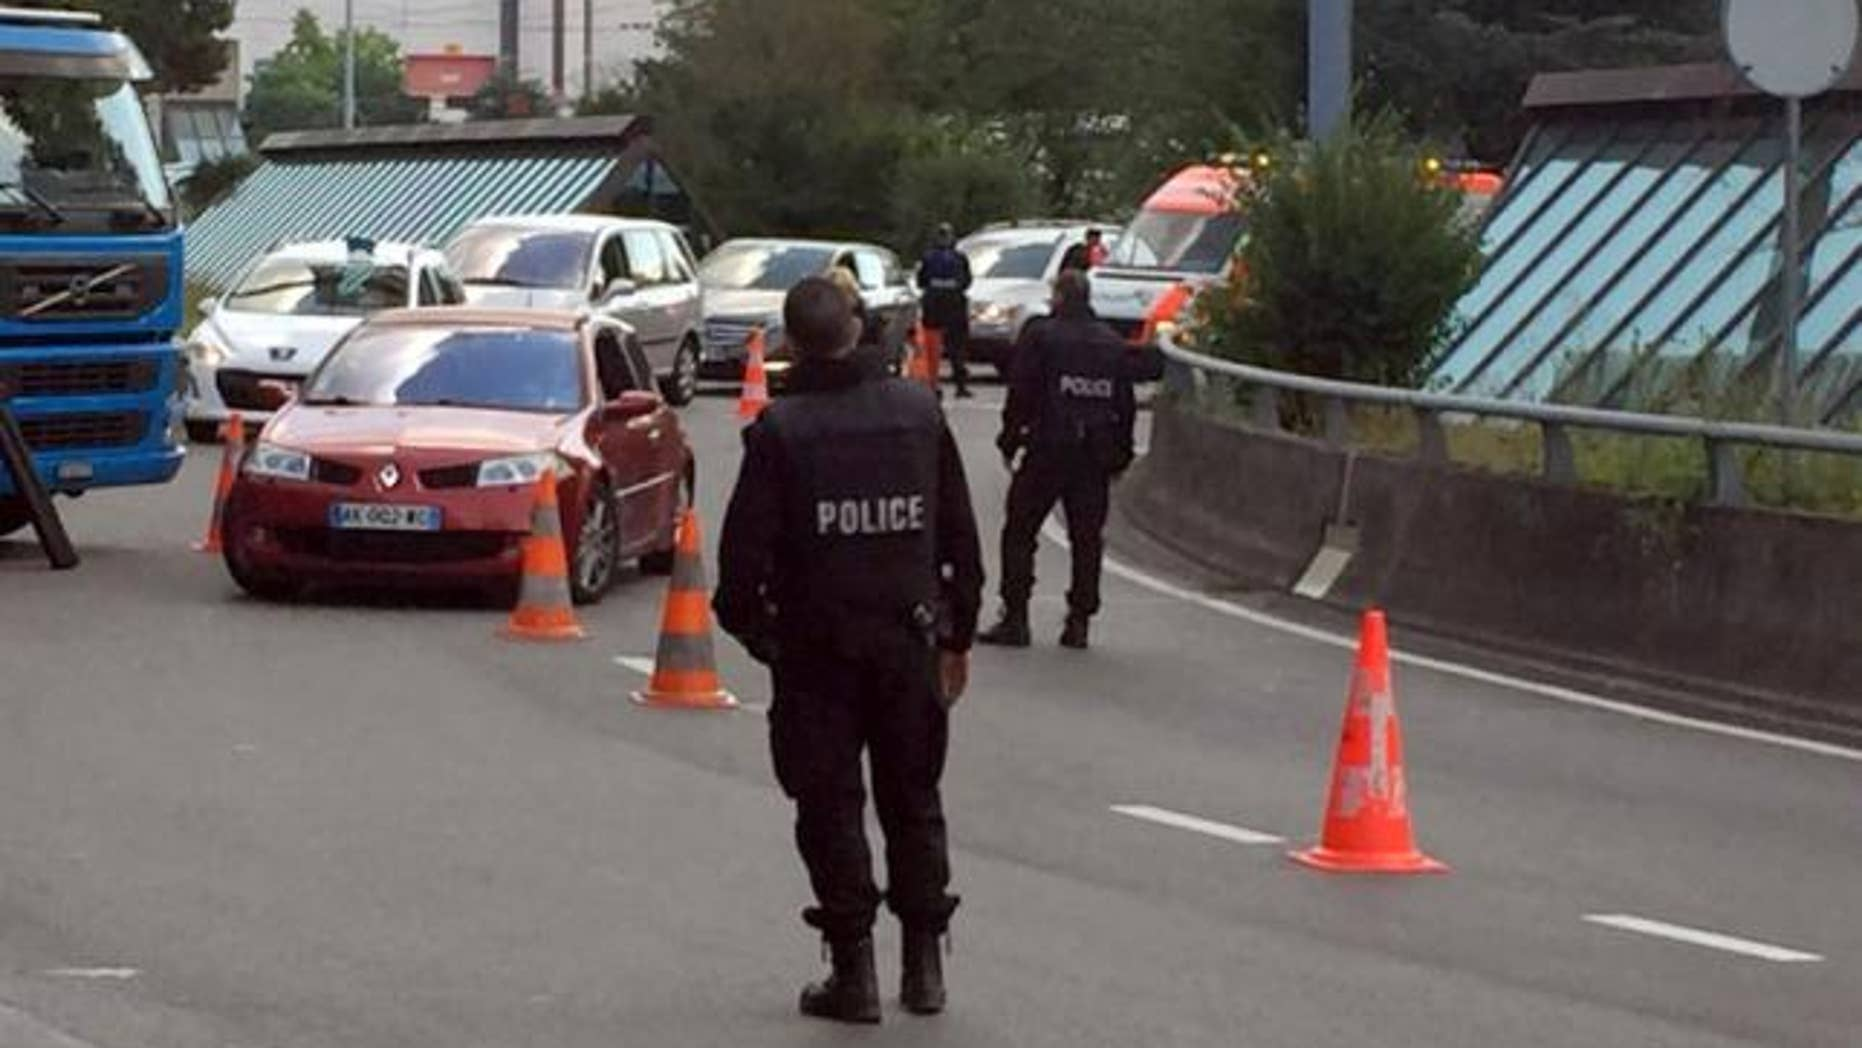 Swiss police conduct checks on cars at the entrance of the Cointrin airport in Geneva, Switzerland July 27, 2016. Authorities later determined called in a fake bomb threat to keep her husband from flying.